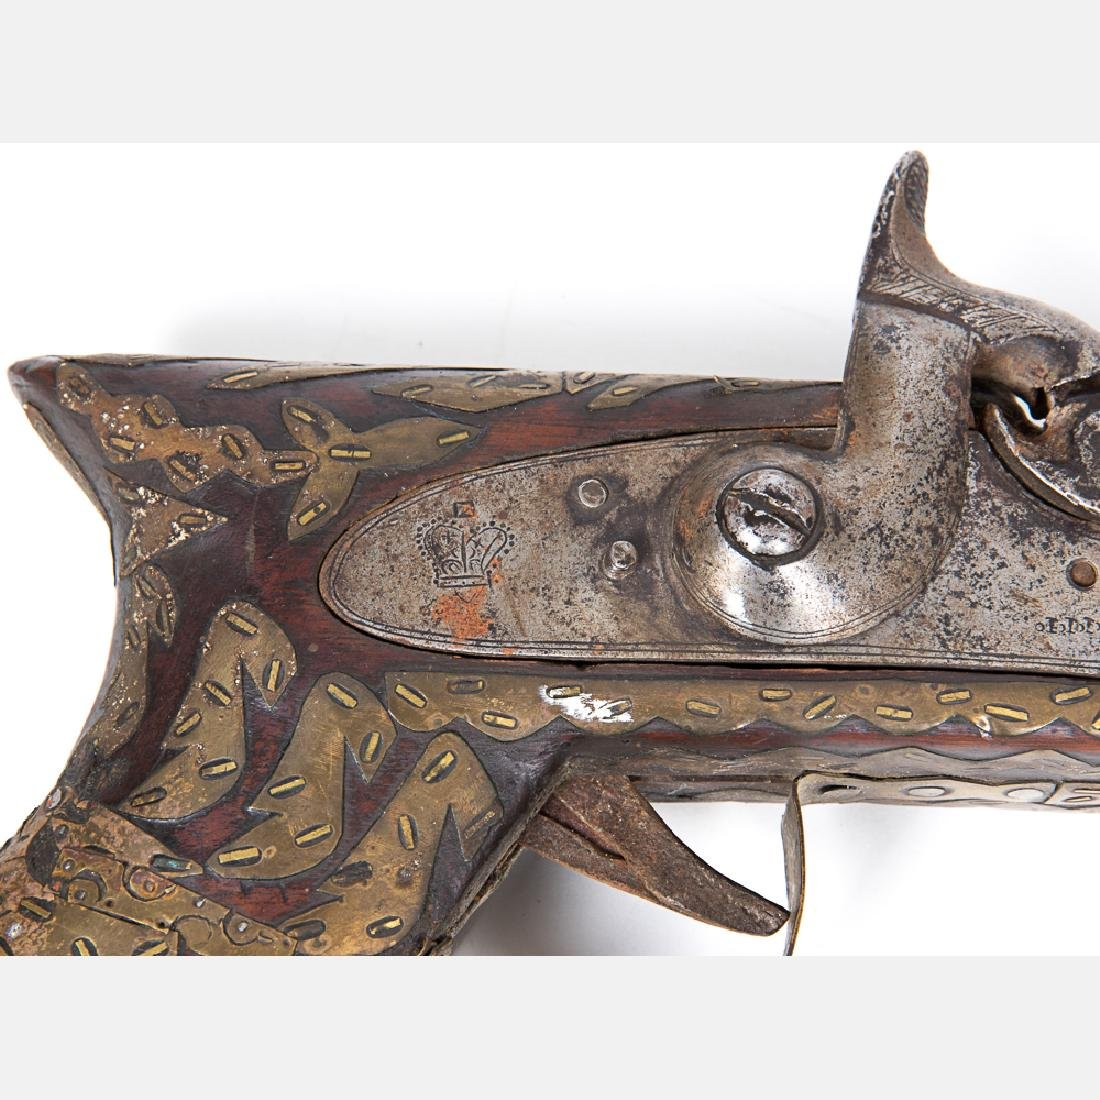 A Middle Eastern Percussion Rifle, 19th Century, - 2